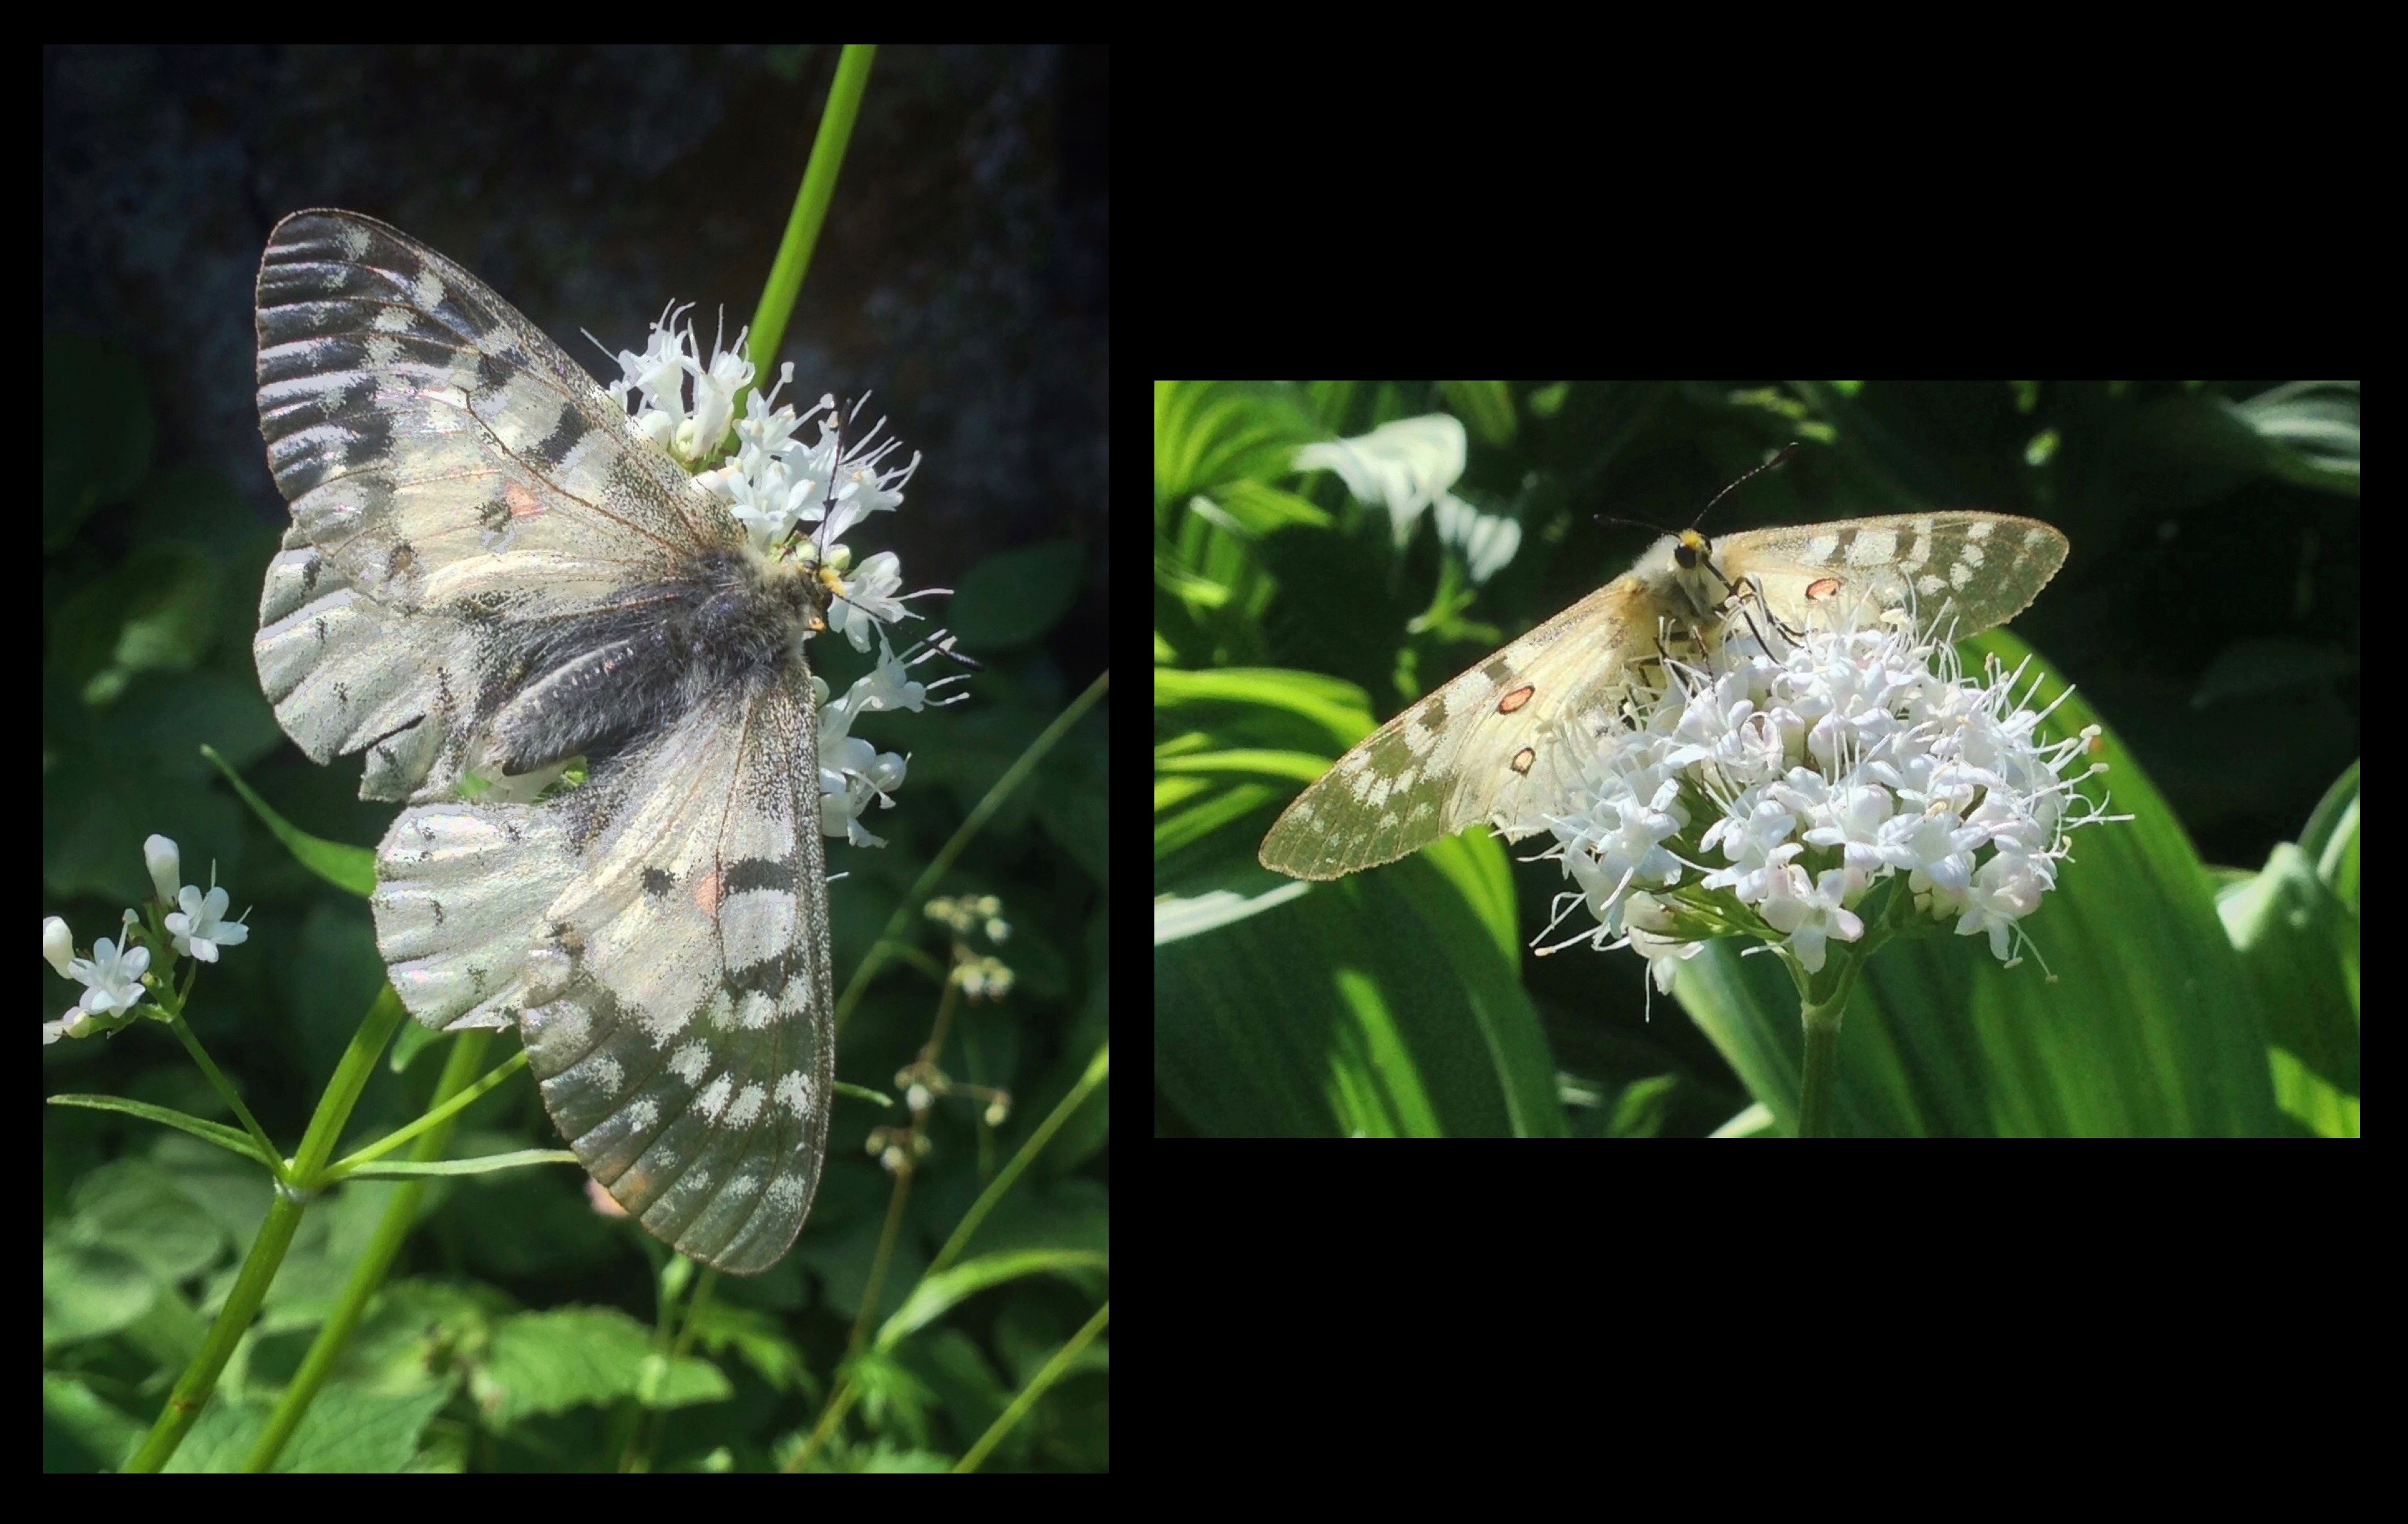 In beds of Sitka valerian (Valeriana sitchensis) along the lake shore, butterflies (here, likely clodius parnassians, Parnassius clodius, also known as clodius Apollos or Apollo parnassians) engage in the frenzied, even if brief, pursuit of nectar and mates. Denny Creek - Melakwa Lake Trail, August 03, 2014.